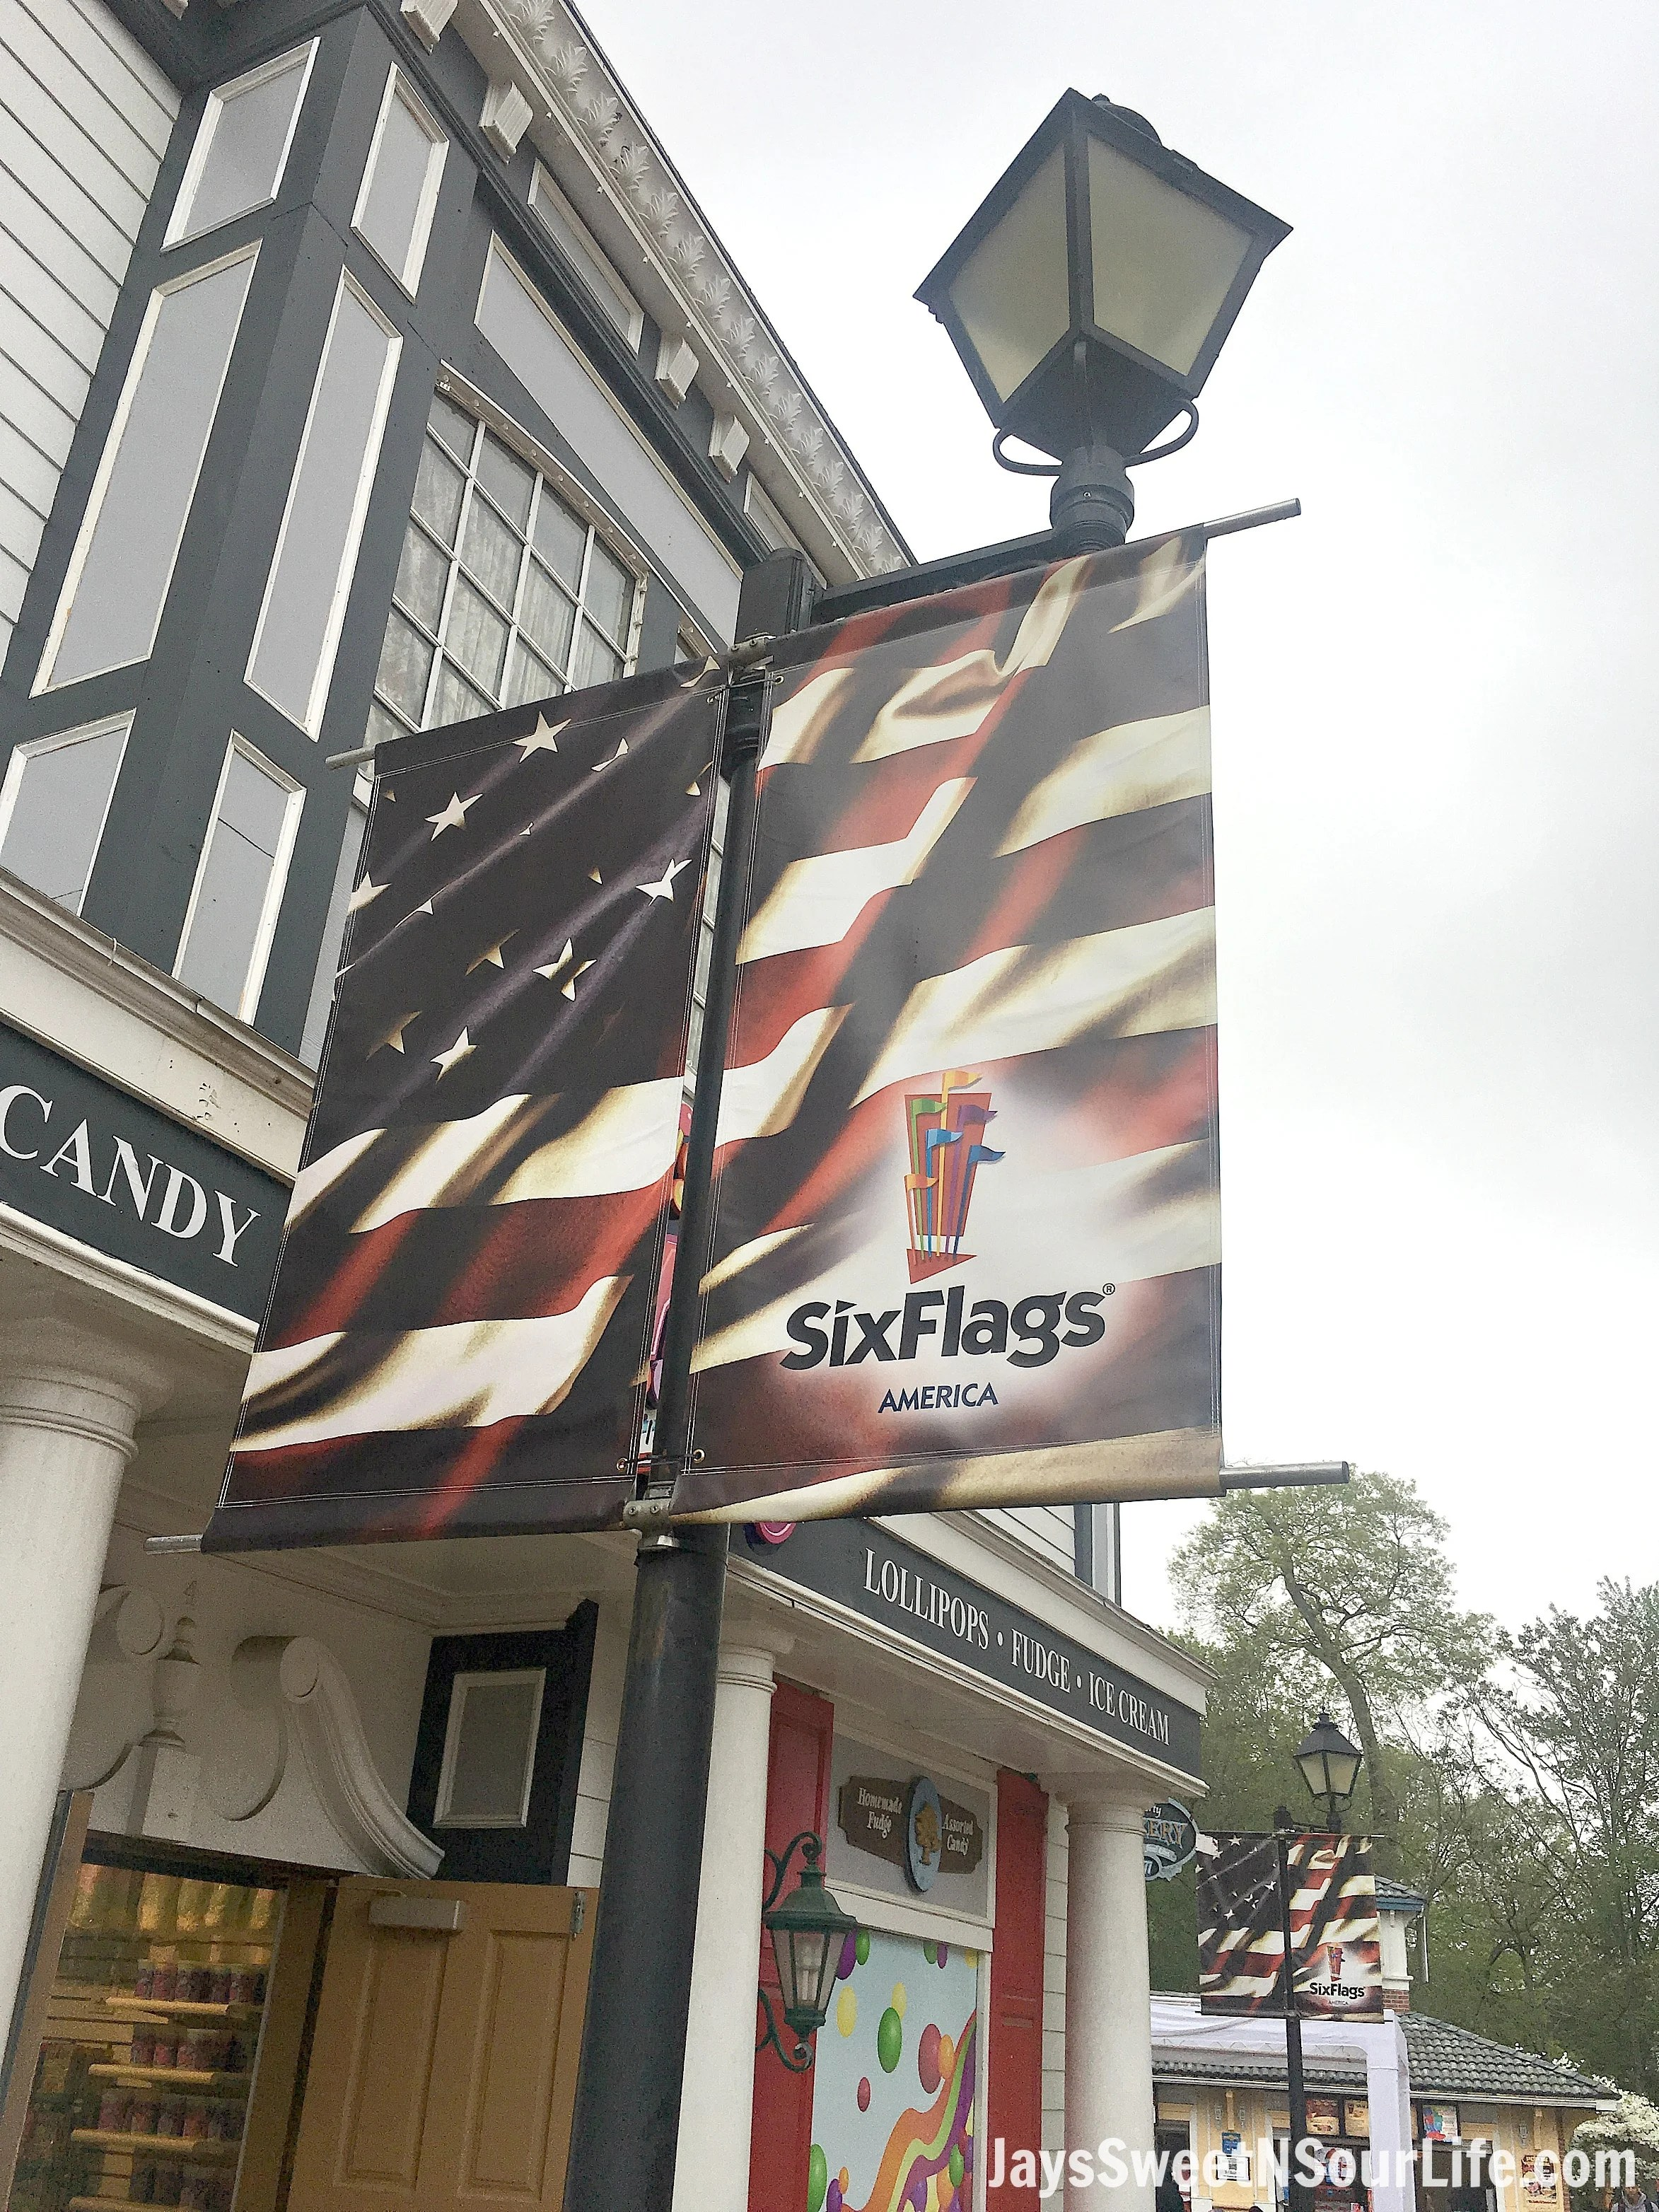 8 Tips For Rainy Day Fun At Six Flags America Flag. If you are planning a trip to Six Flags America and realized the weather calls for rain don't cancel your plans! These 8 Tips For Rainy Day Fun At Six Flags America will save the day.